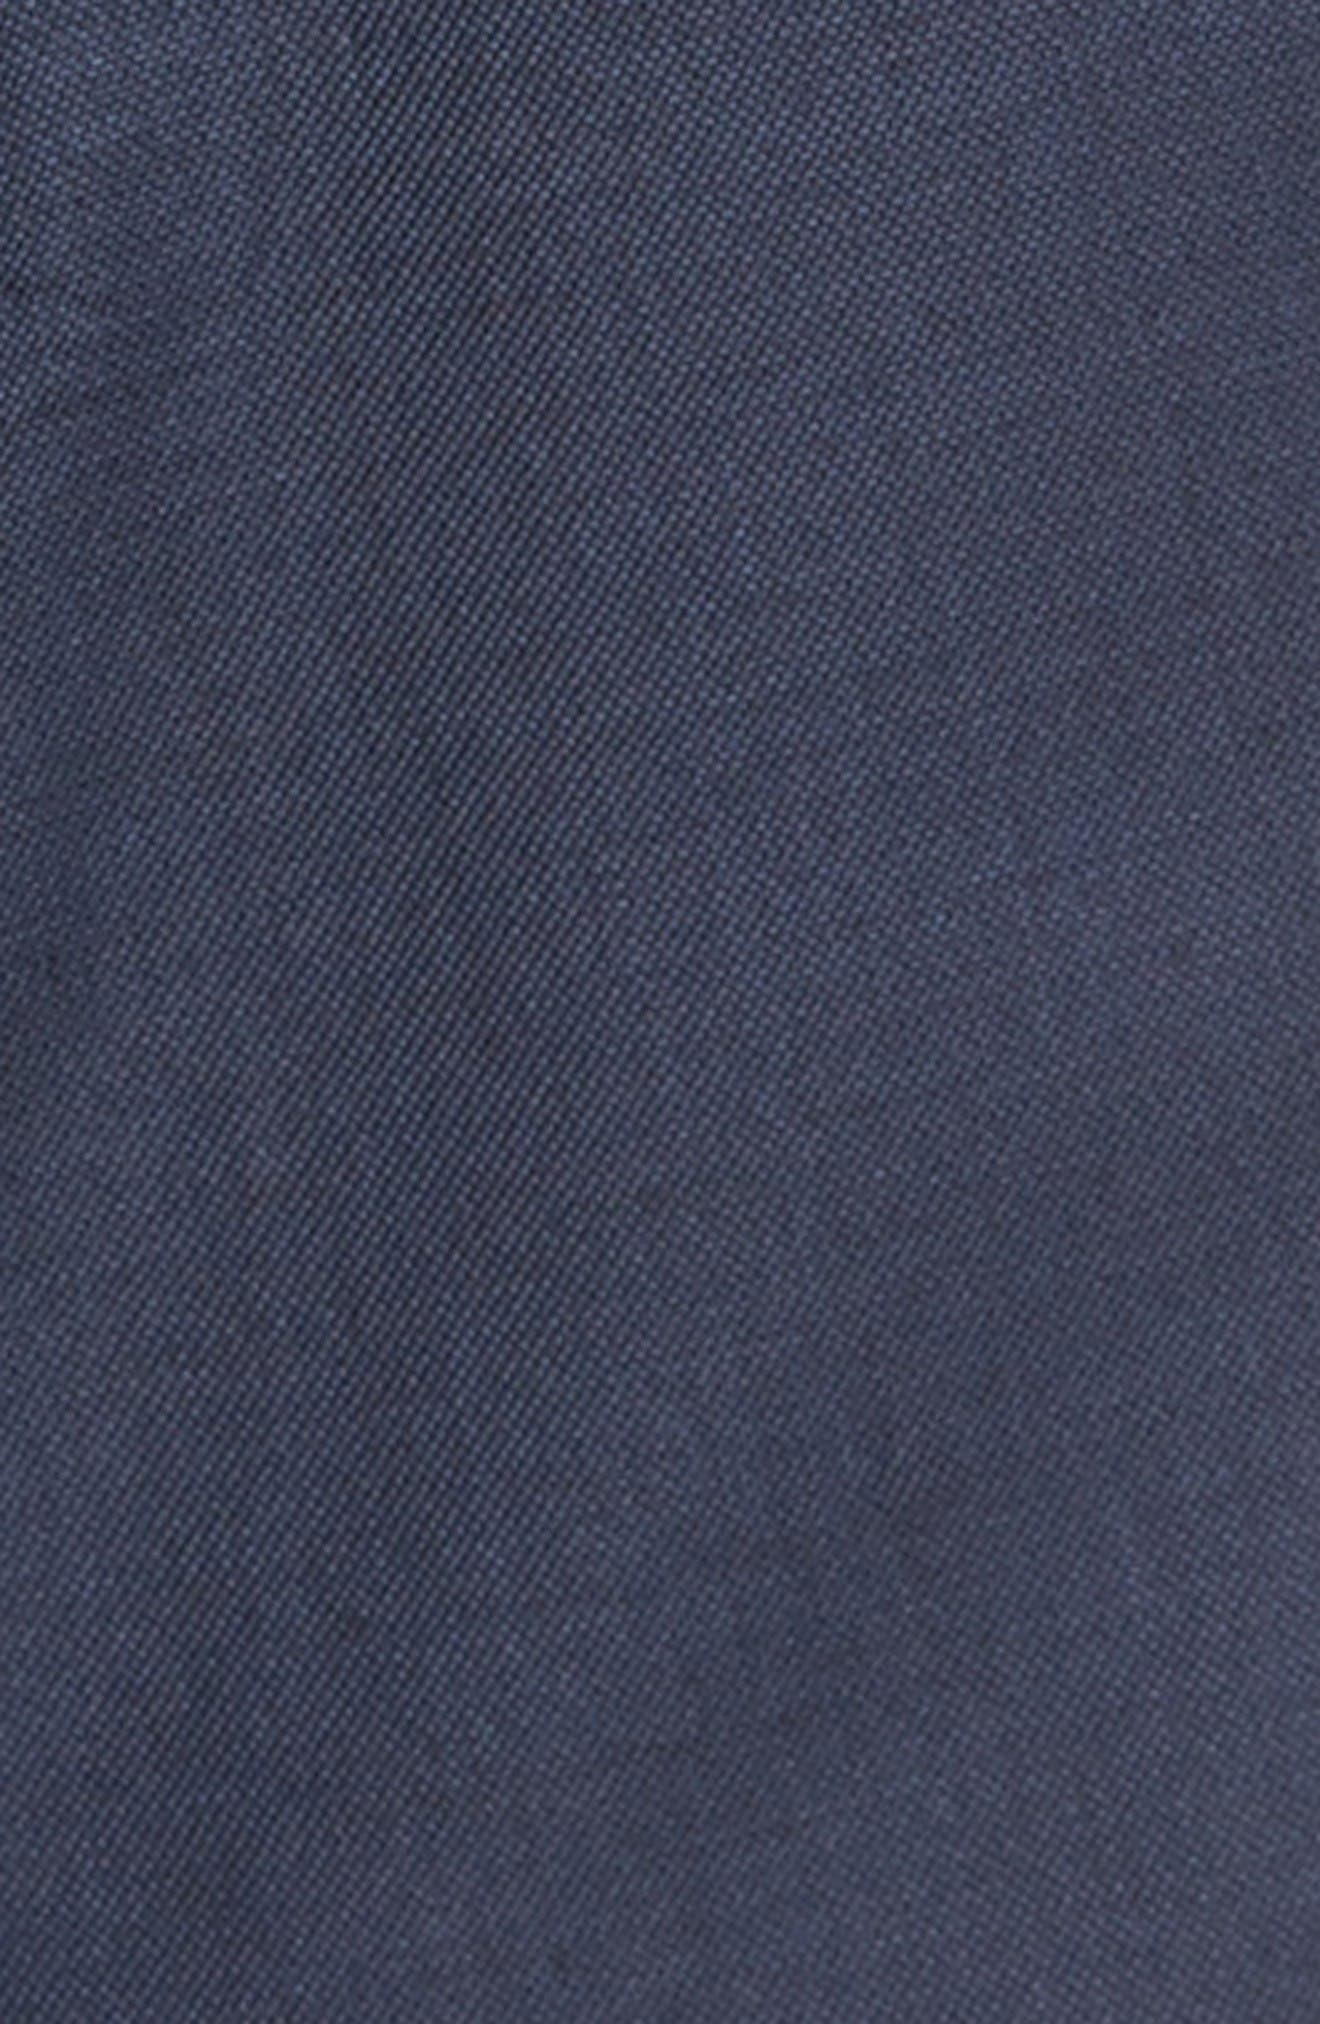 Classic Fit Sharkskin Wool Suit,                             Alternate thumbnail 7, color,                             Navy